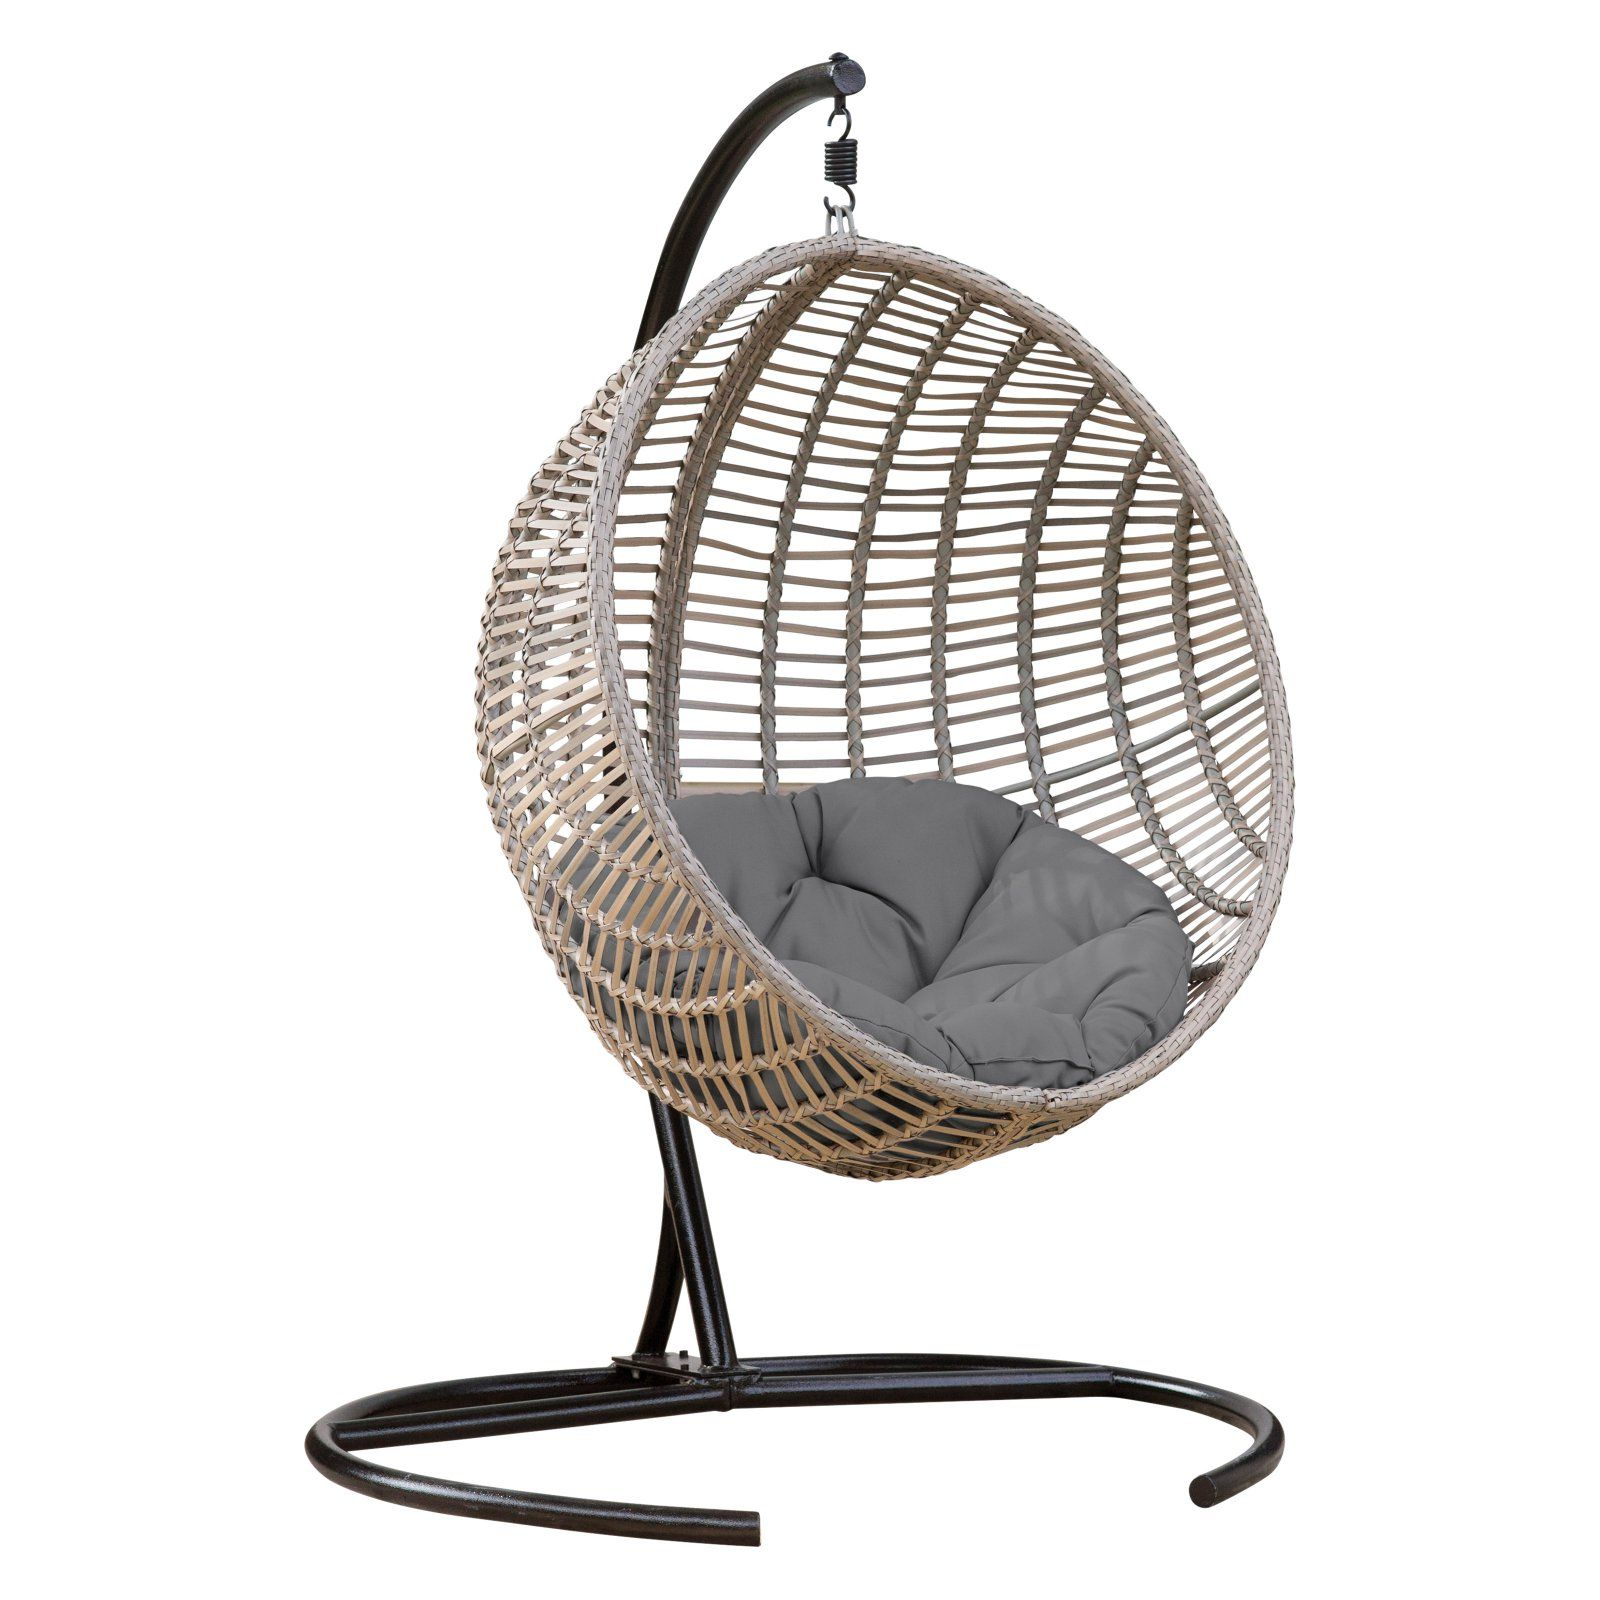 Mid Century Rattan Chair, Belham Living Resin Wicker Kambree Rib Hanging Egg Chair With Cushion And Stand Walmart Com In 2020 Hanging Chair Outdoor Hanging Egg Chair Swinging Chair